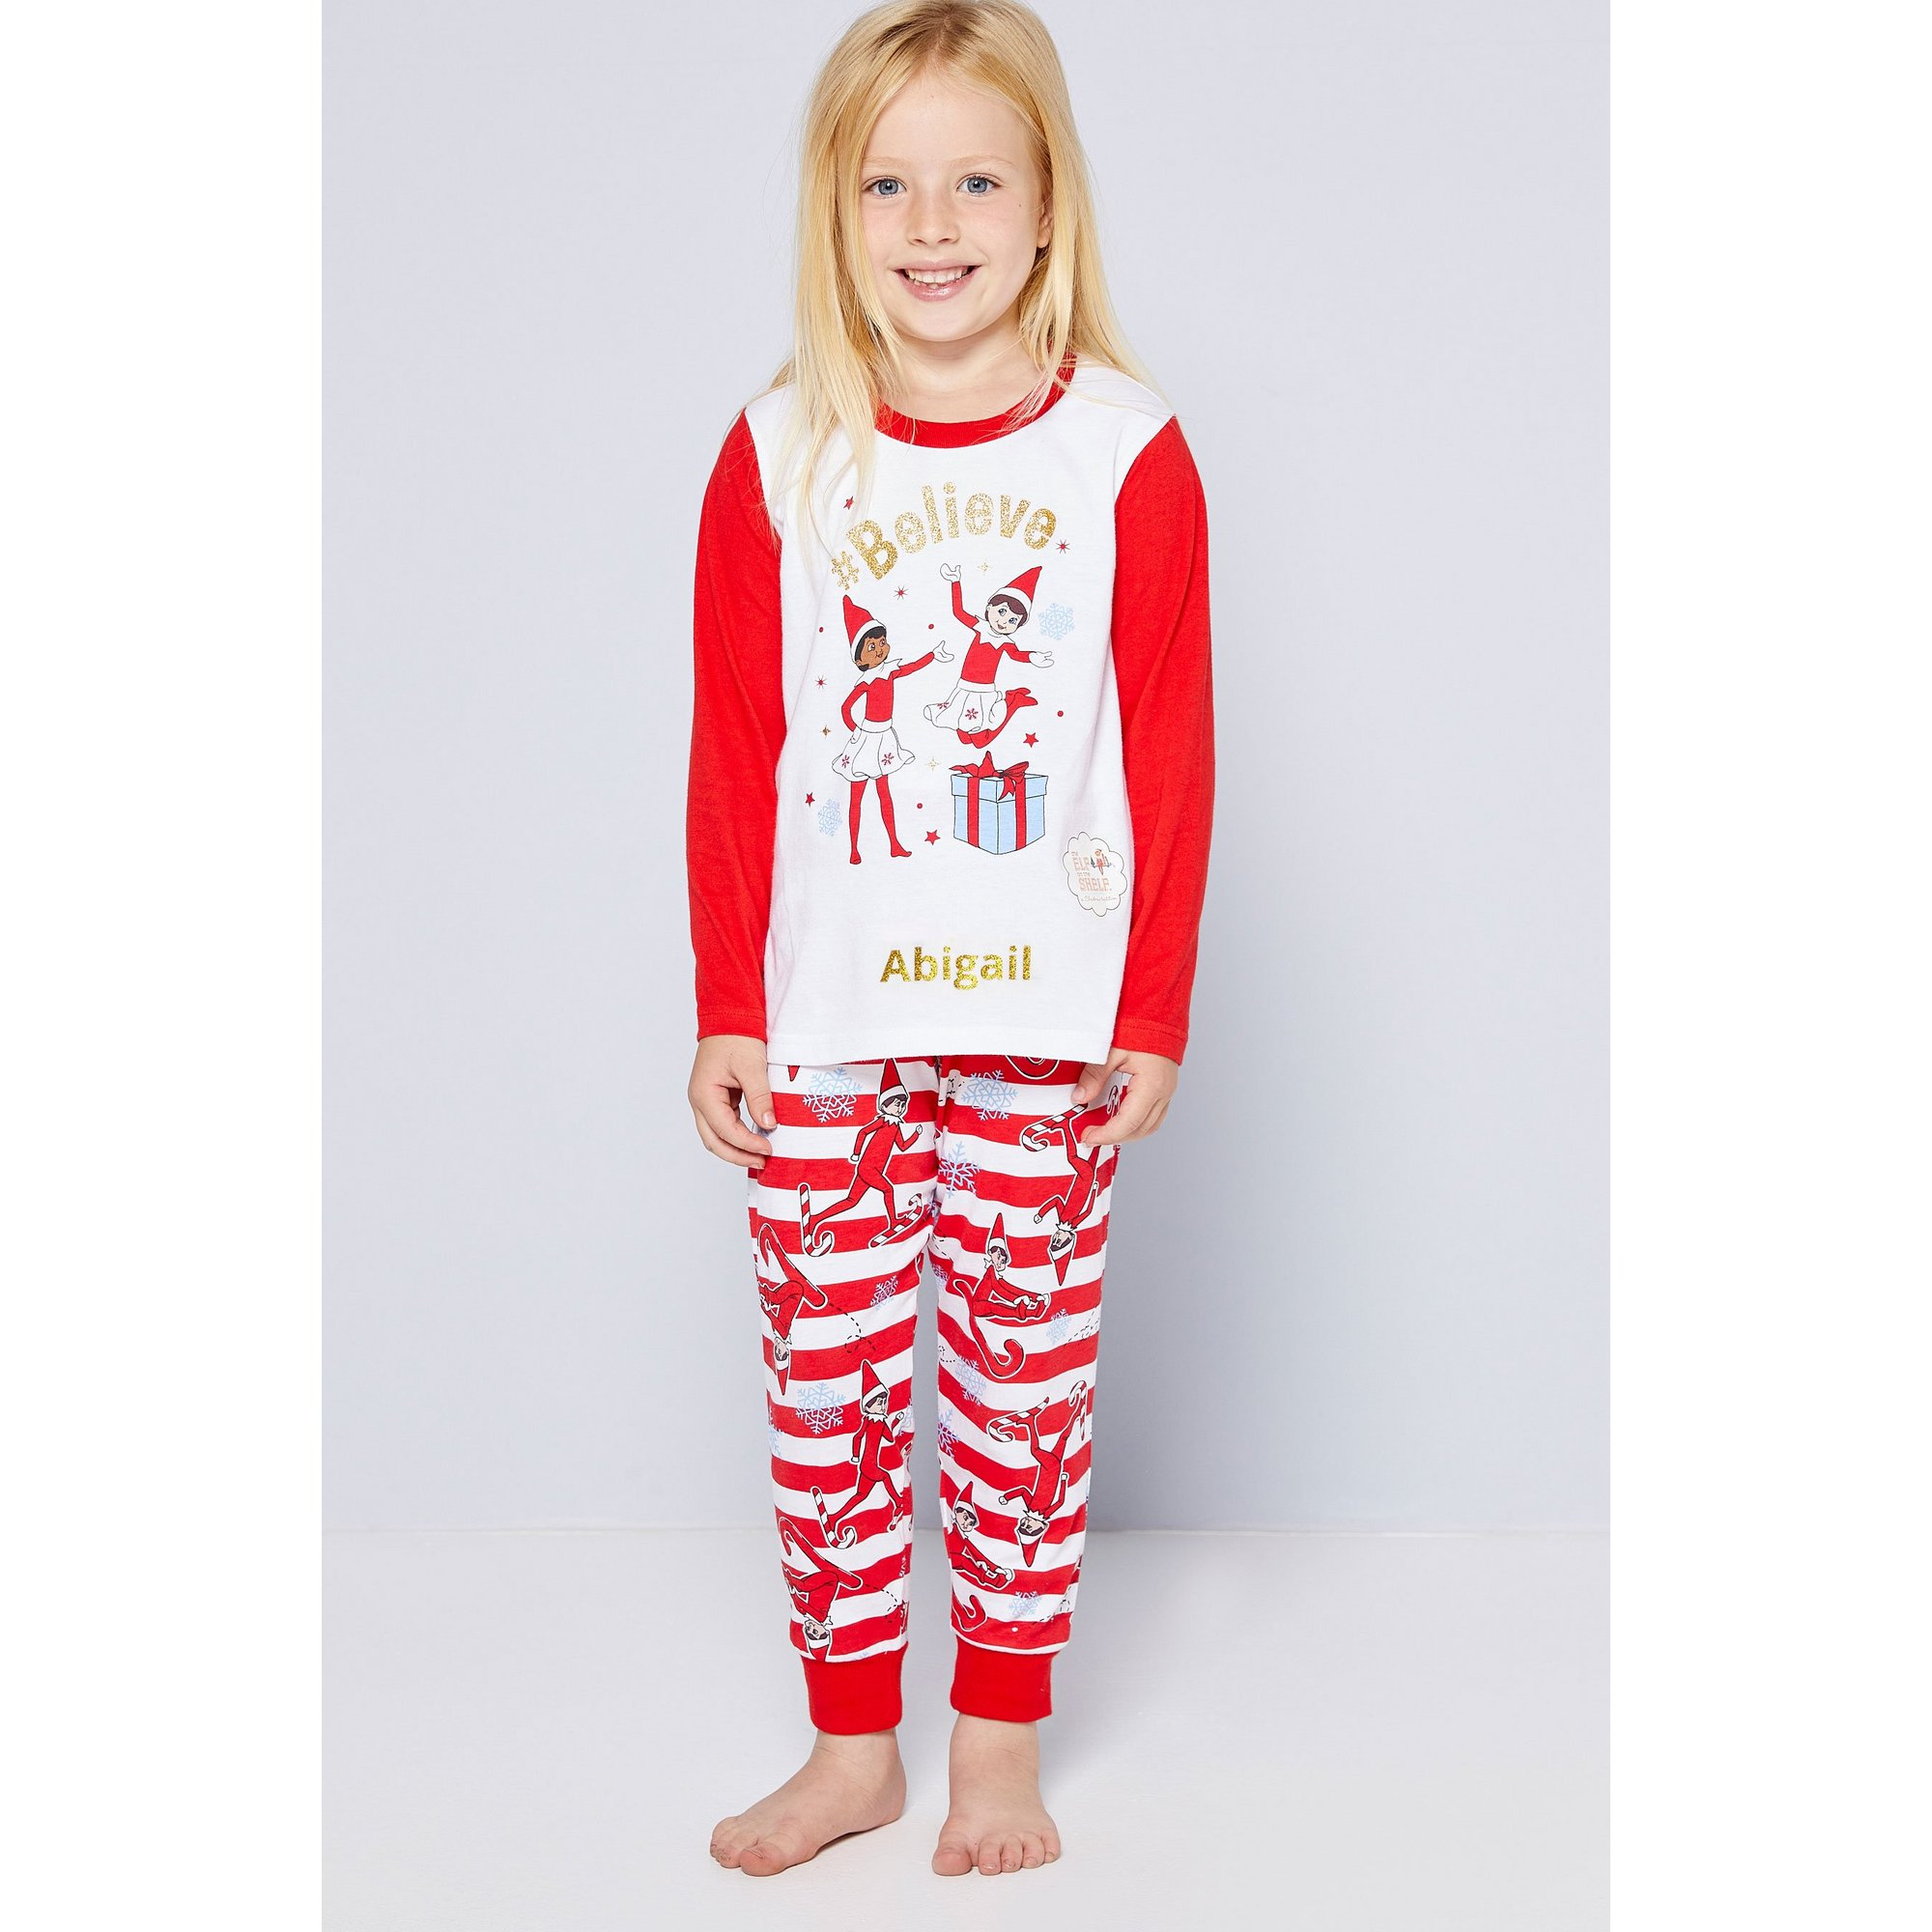 Image of Personalised Girls Family Elf On The Shelf Christmas Pyjamas